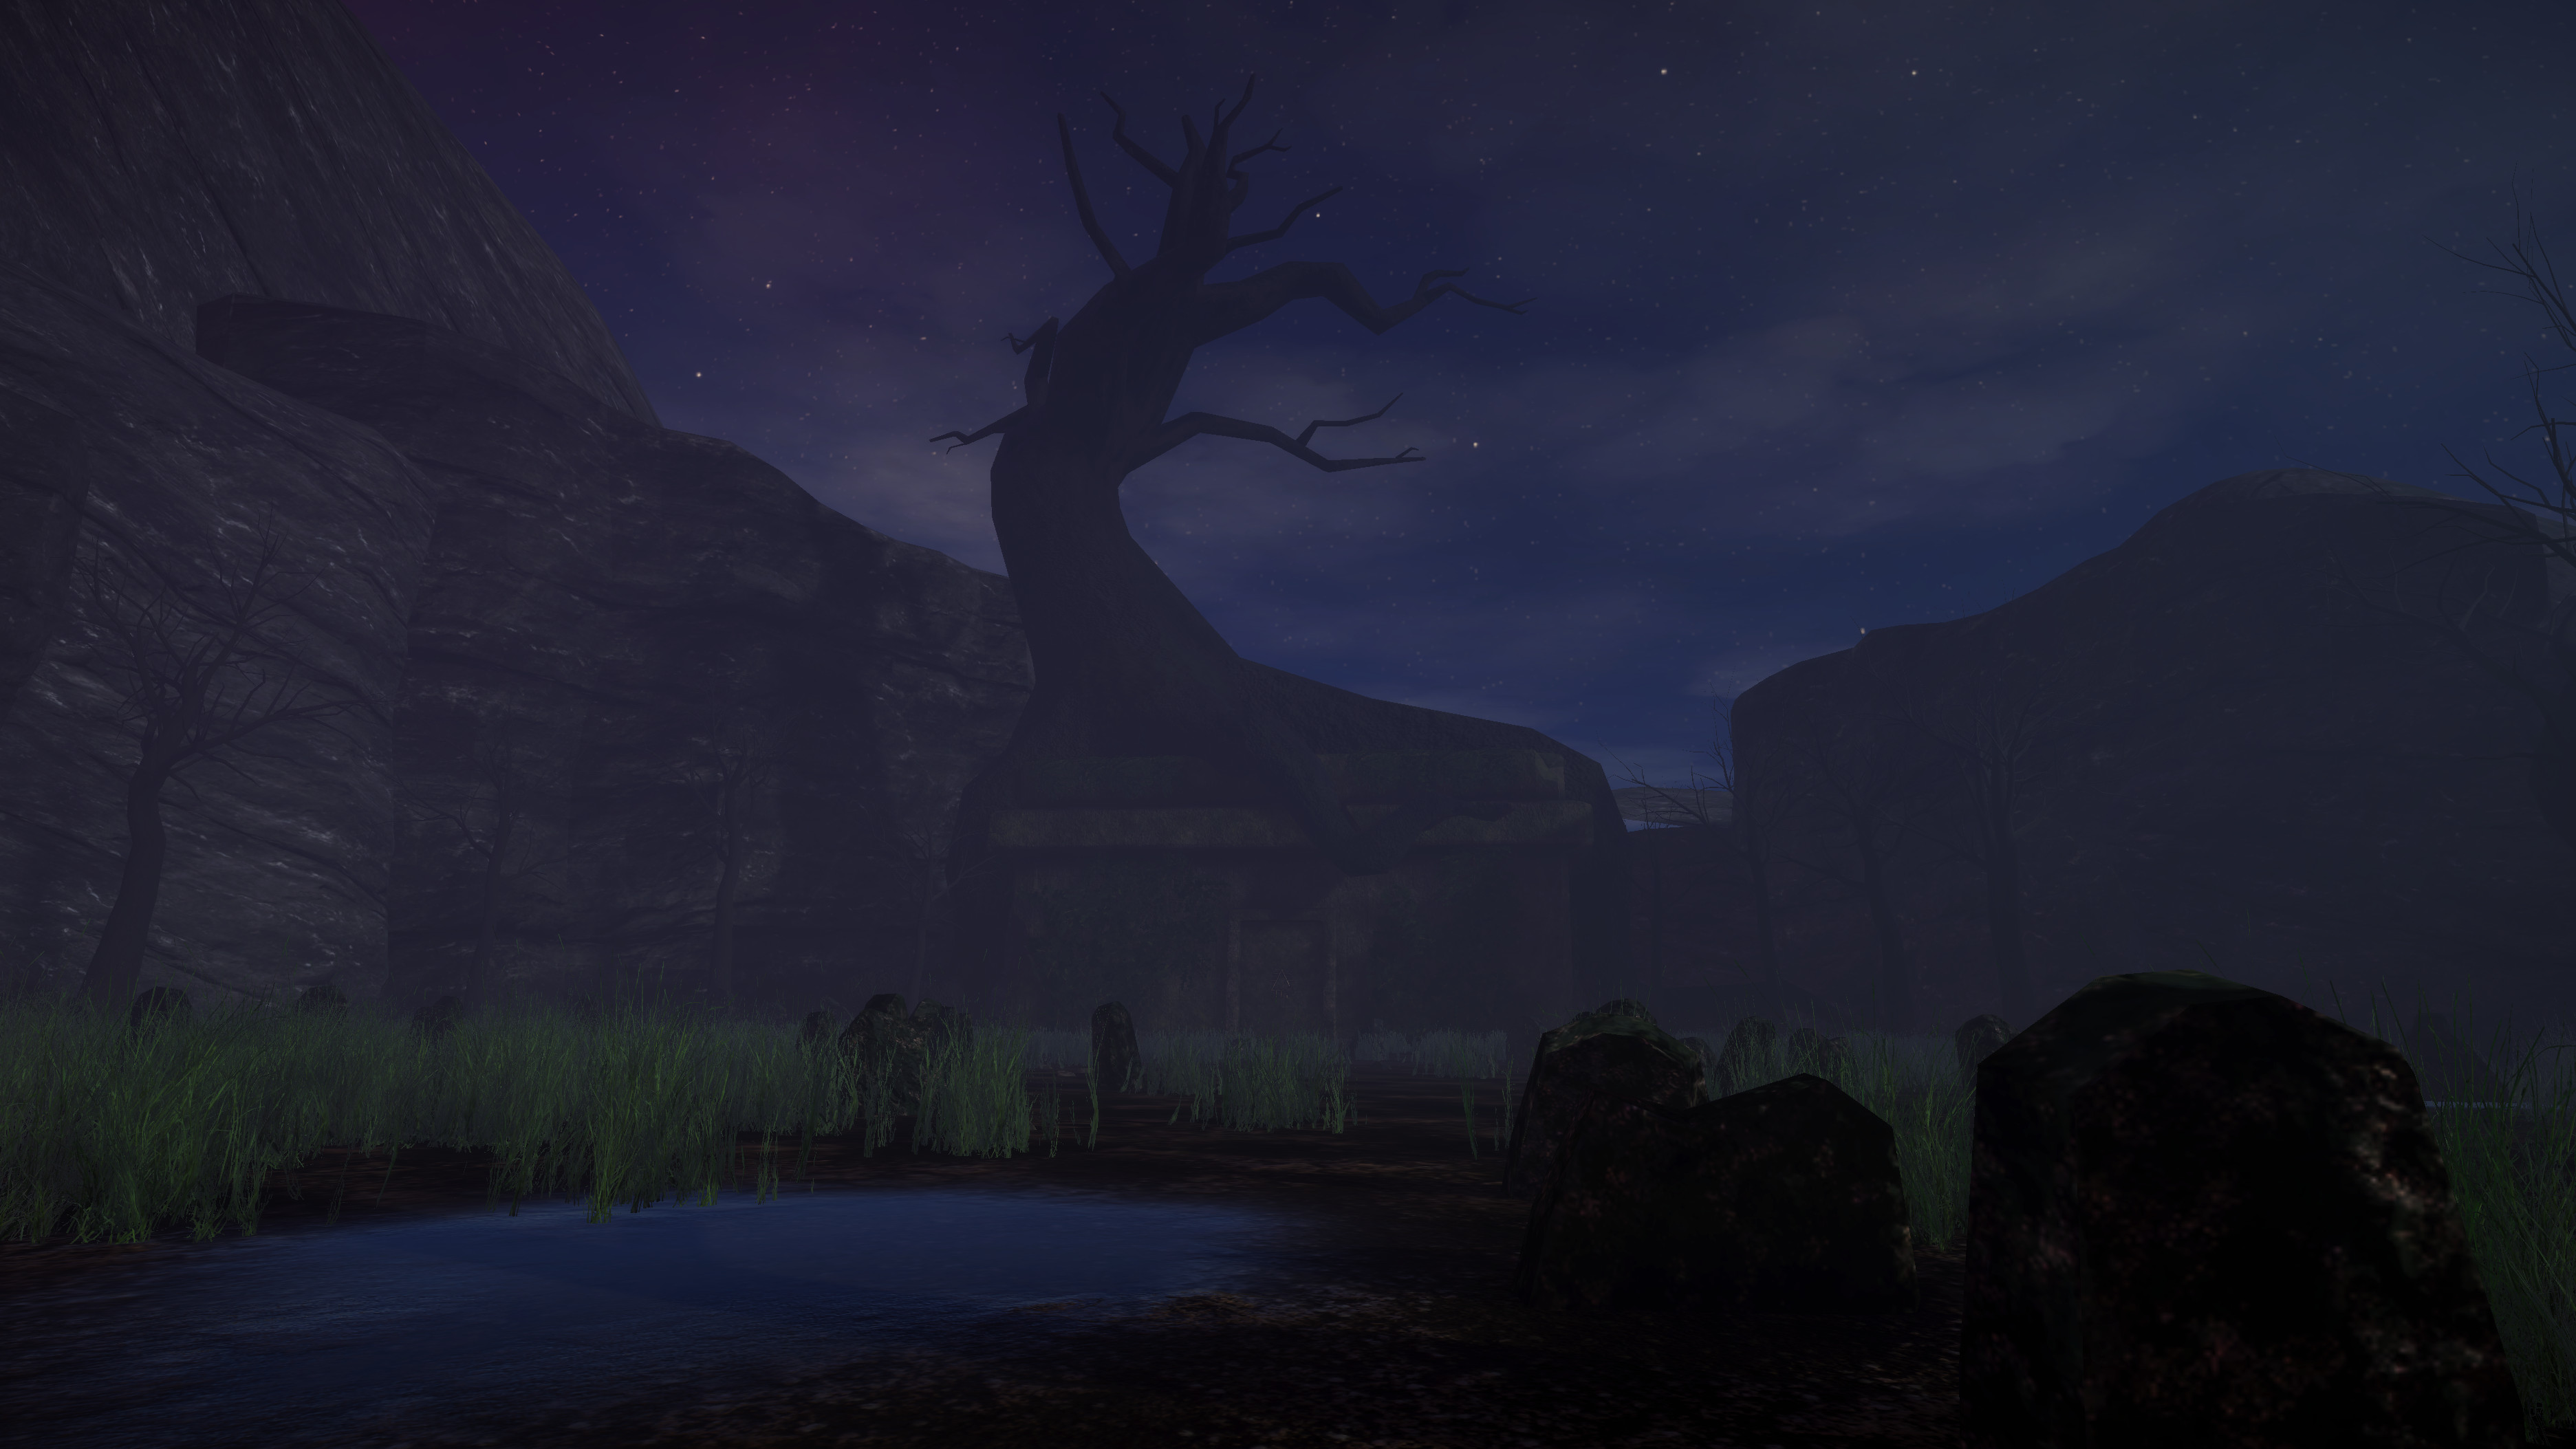 The Graveyard - I worked with another 3D Artist for this scene. I made the building and trees, as well as did the terrain work.